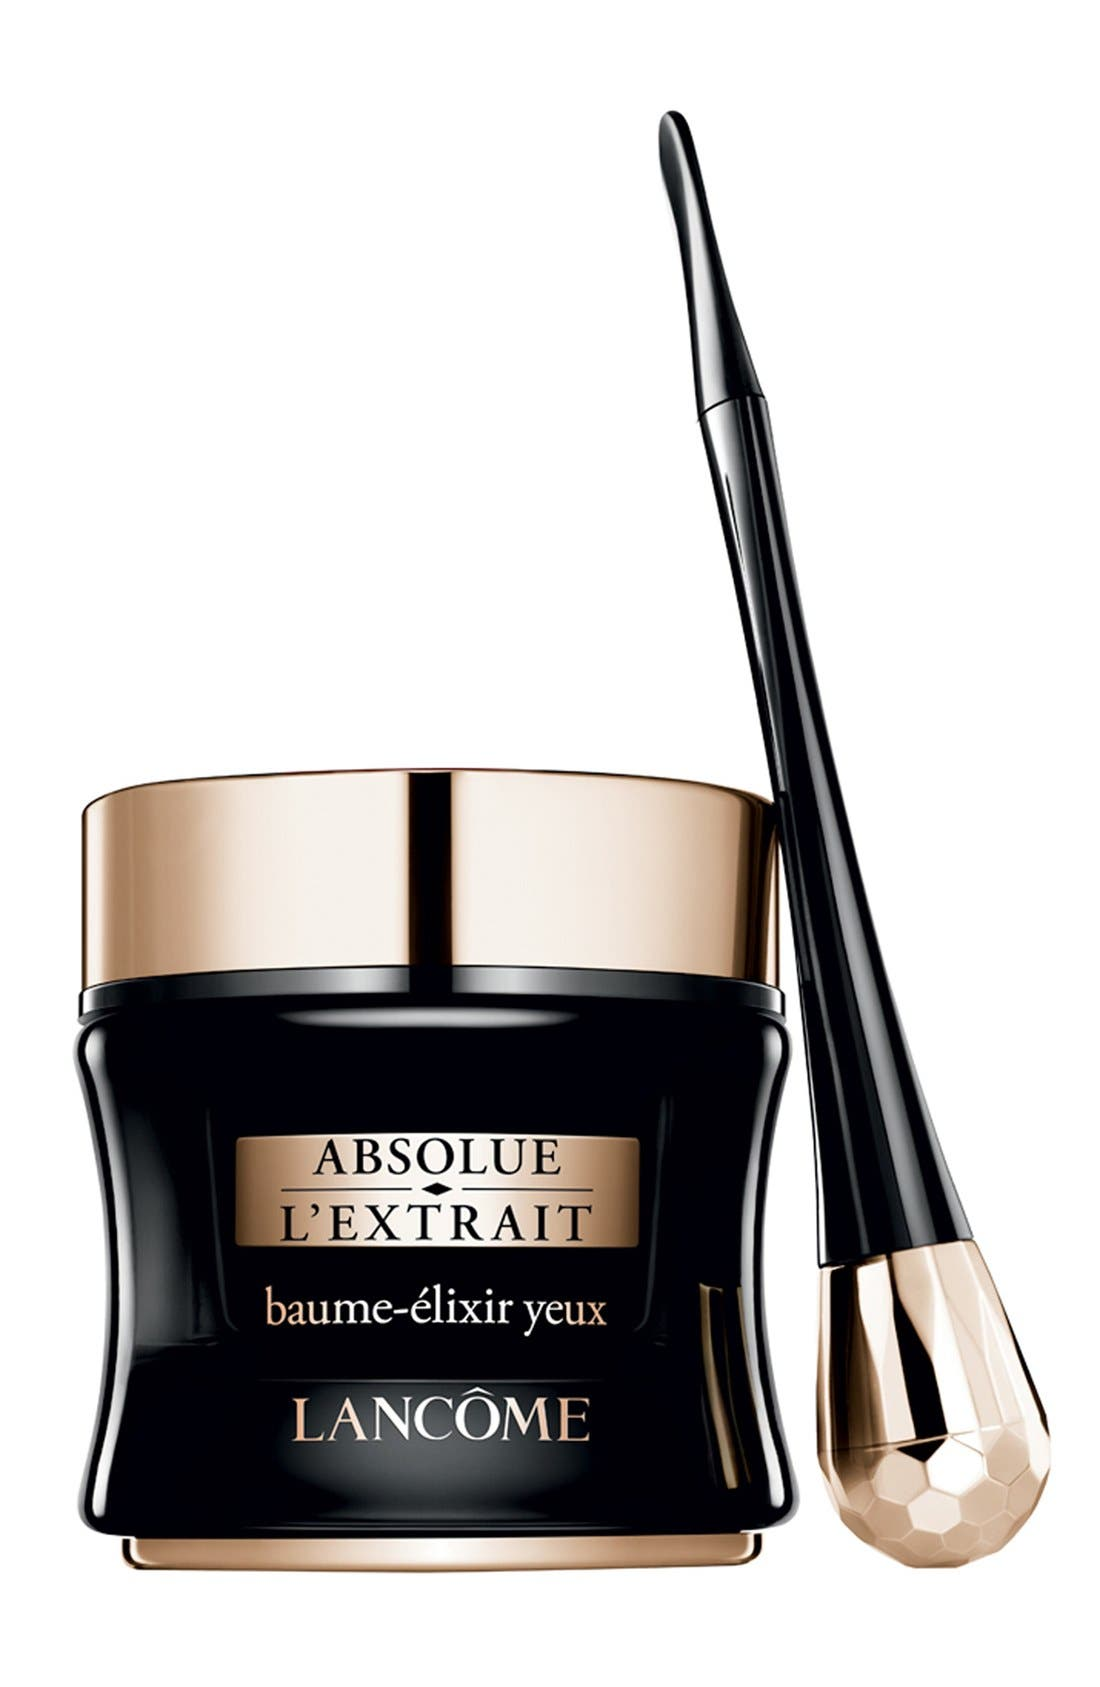 Lancôme Absolue LExtrait Ultimate Eye Contour Elixir